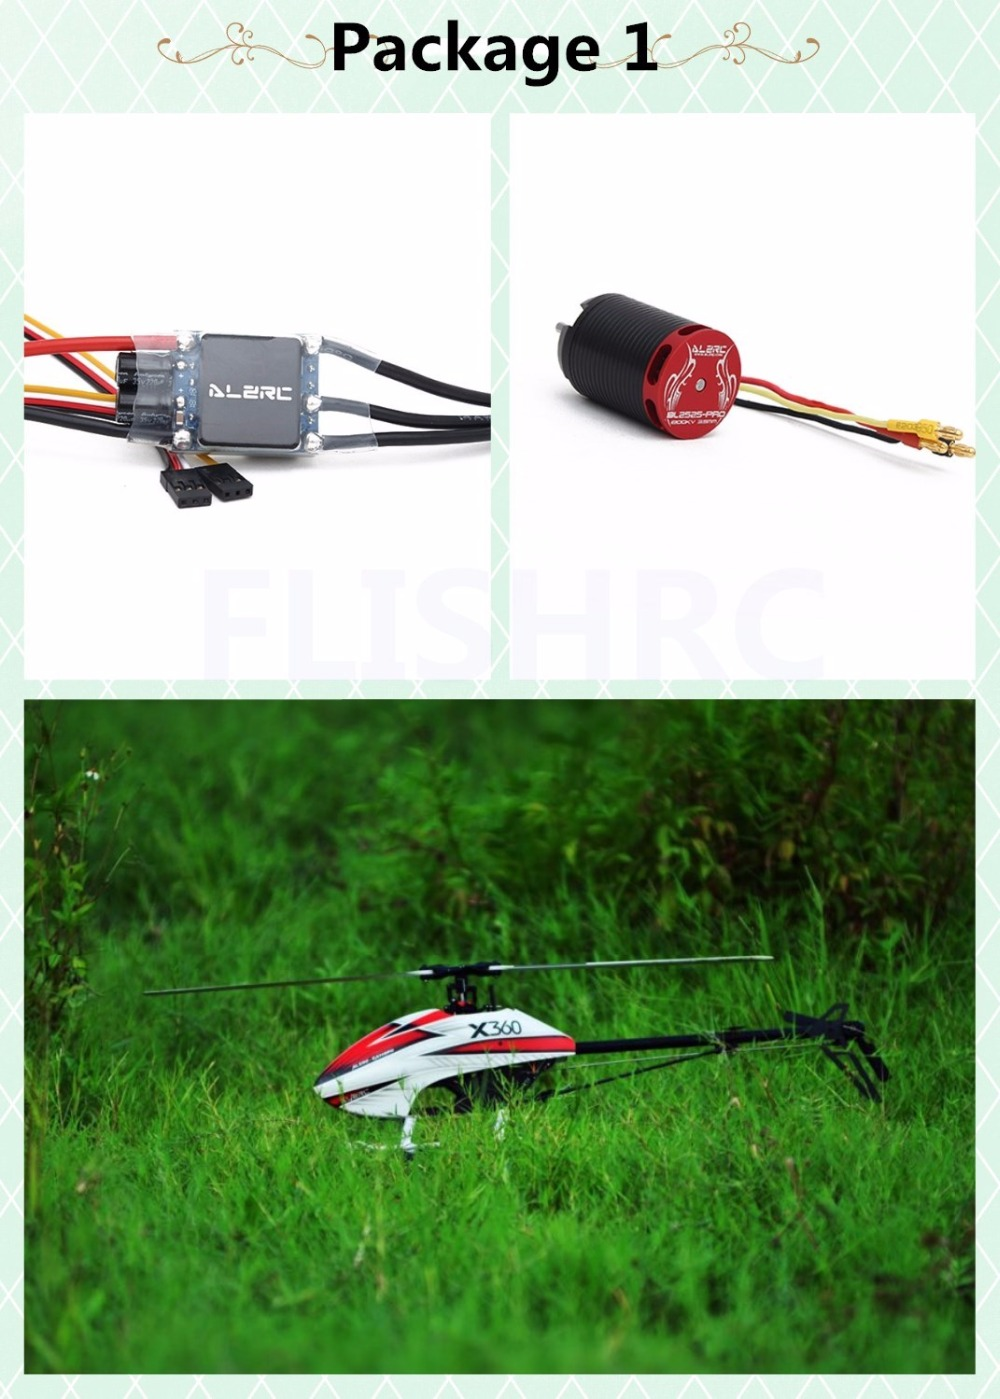 In Stock 2018 The Newest ALZRC-X360 FAST FBL KIT Helicopter (Motor +ESC) for GAUI X3 alzrc devil x360 metal radius arm set red x360 helicopter parts fit gaui x3 dx360 09ma